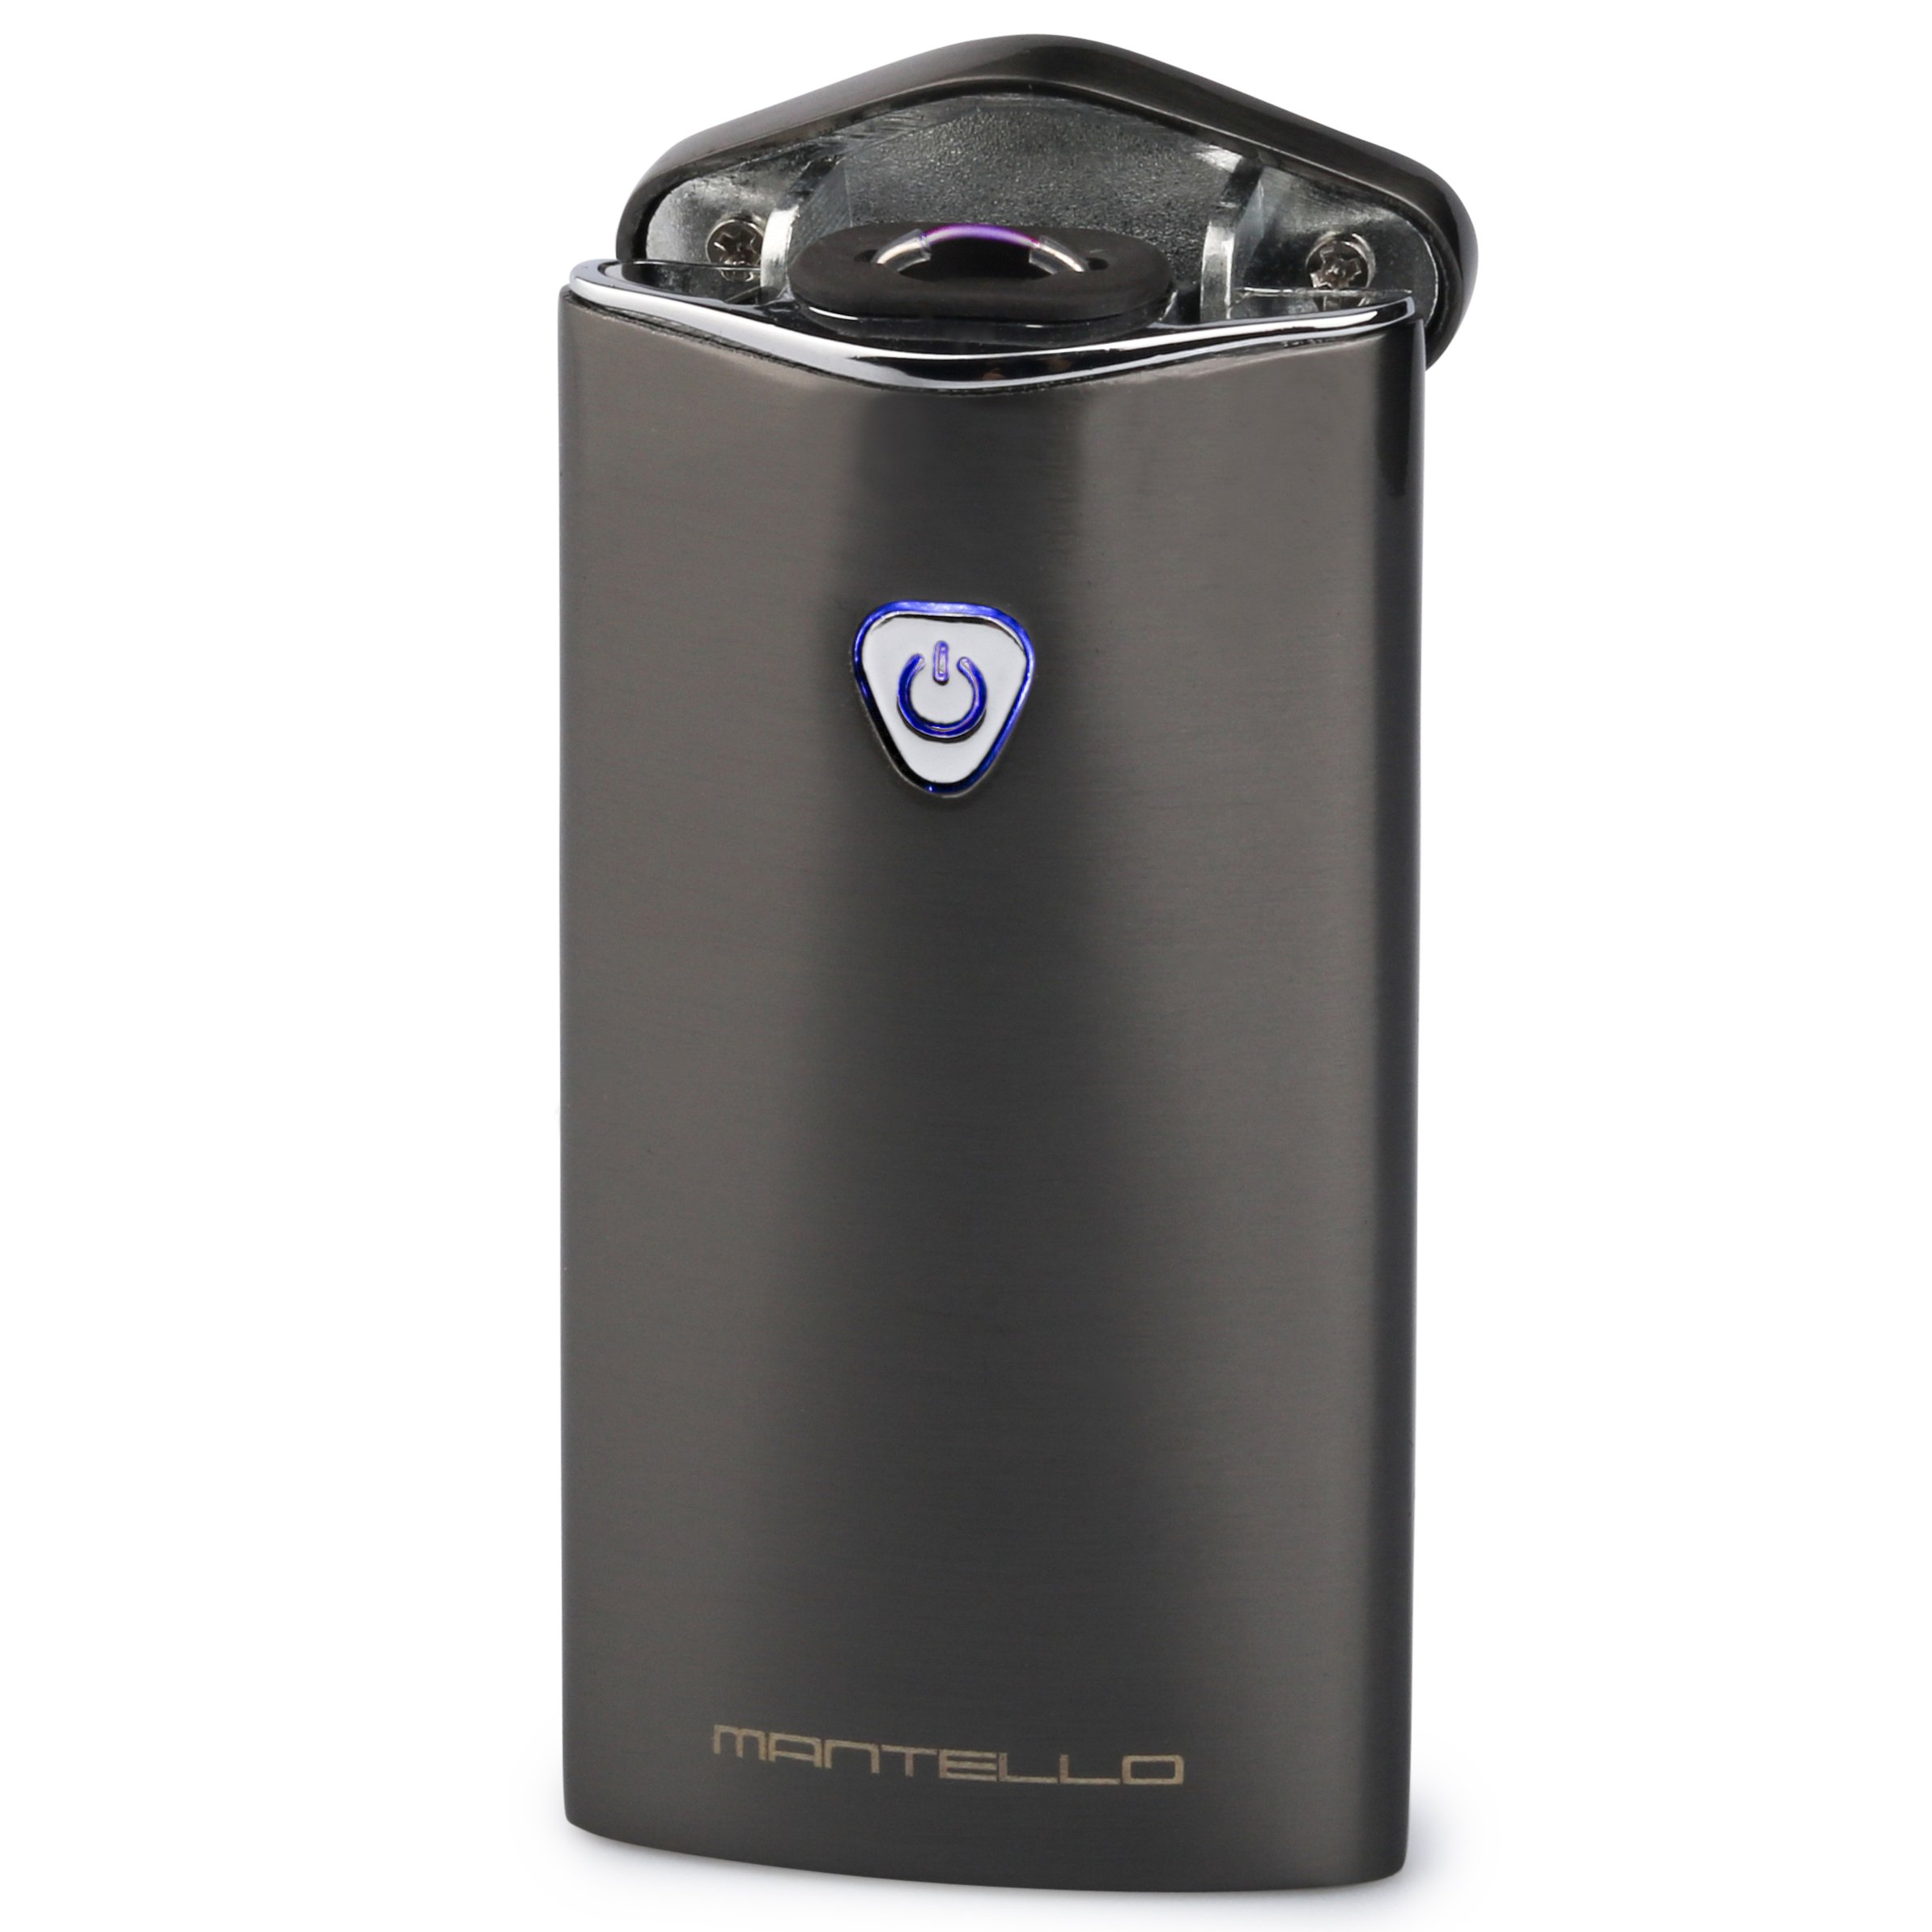 Amazon.com: Mantello USB Rechargeable Windproof Arc Lighter: Health & Personal Care